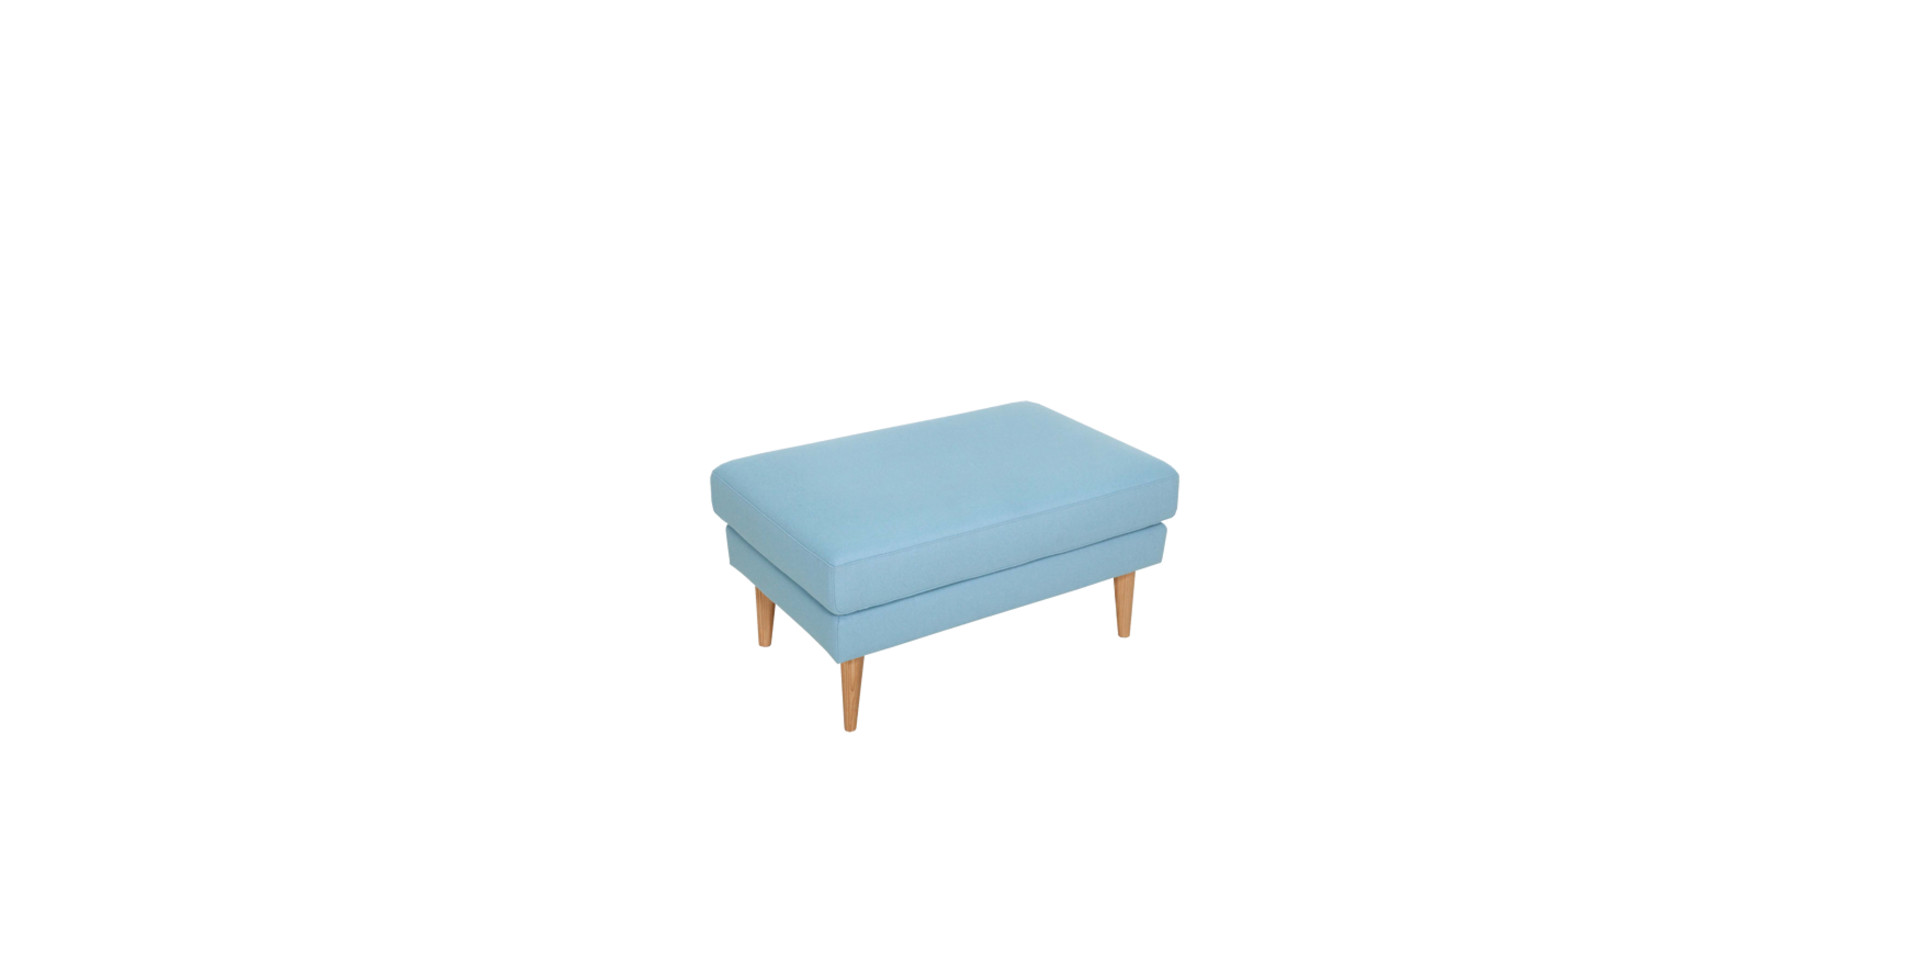 sits-otto-pouf-footstool_panno2048_storm_blue_3_0